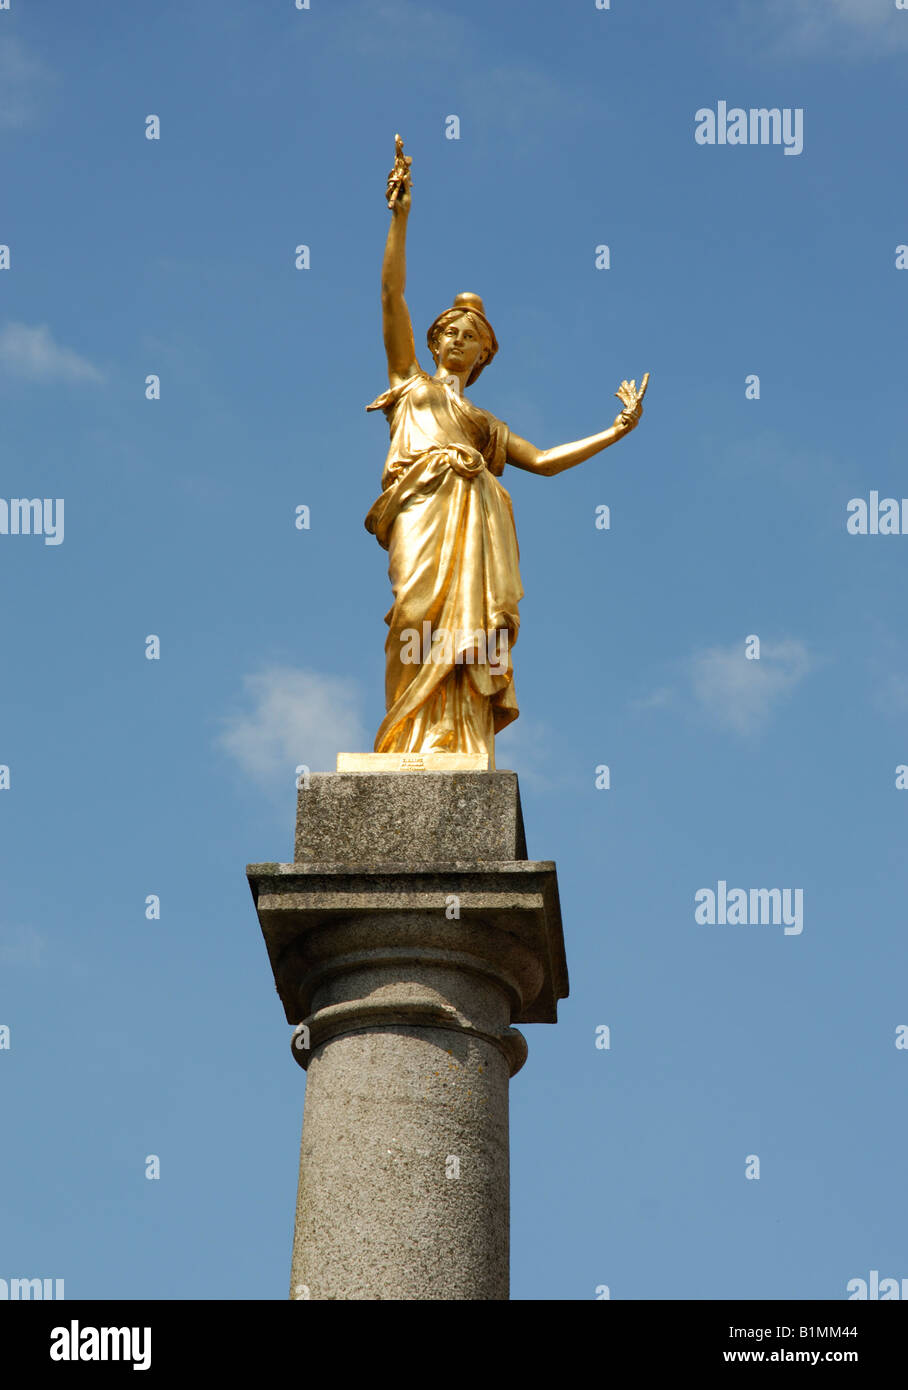 A guilded statue of Francoise,  looks down from her column on the 'Place de la Republique' in Villedieu - Stock Image